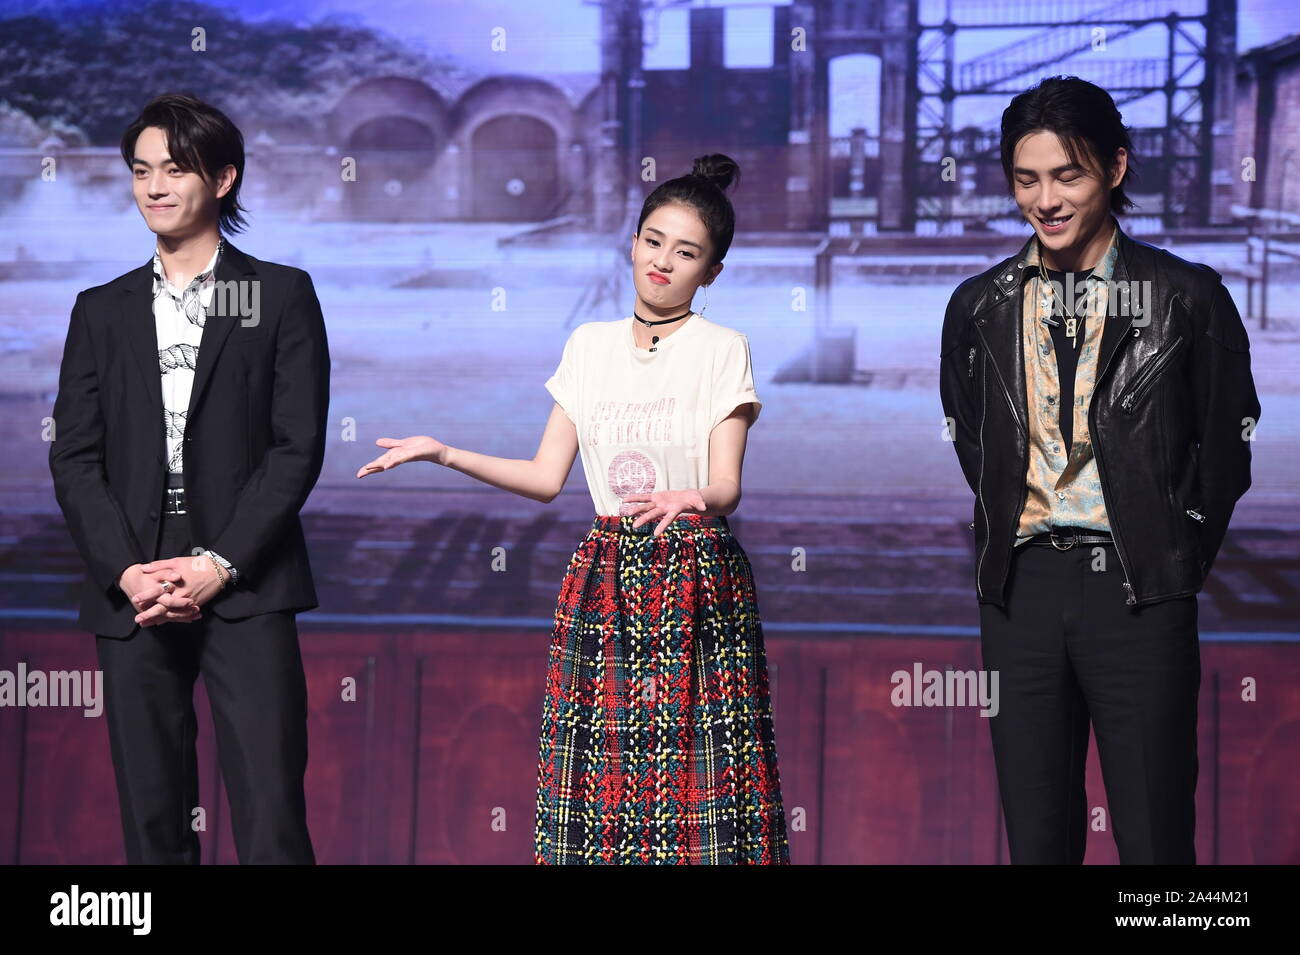 Chinese Actor And Model Xu Kai Left Actress Bai Lu Middle And Hong Rao Attend The Press Conference For Arsenal Military Academy In Beijing 12 A Stock Photo Alamy 白鹿 / 白梦妍 / bai meng yan. https www alamy com chinese actor and model xu kai left actress bai lu middle and hong rao attend the press conference for arsenal military academy in beijing 12 a image329559161 html